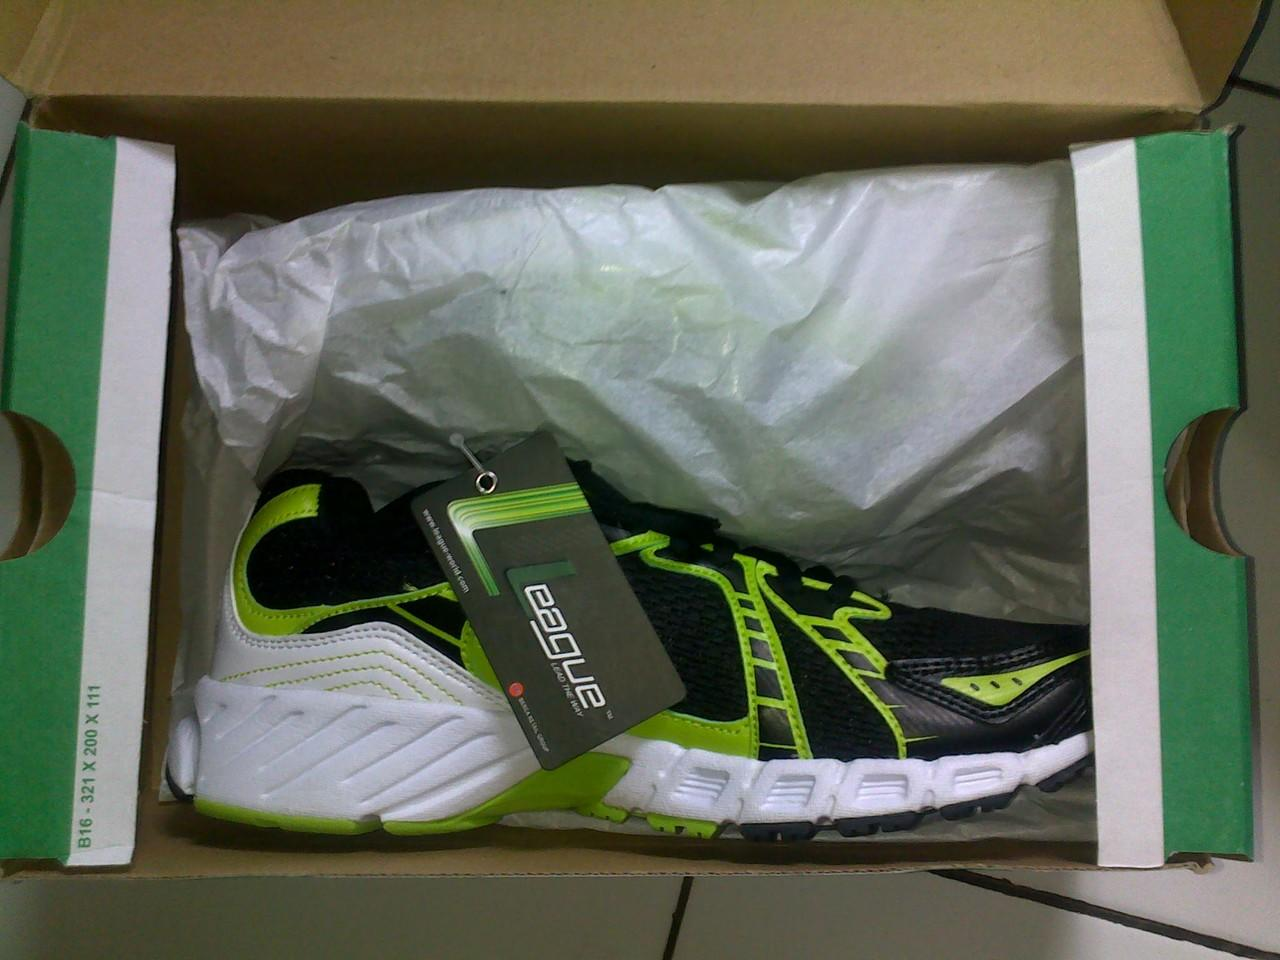 [RUNNING SHOES] MONGGO GAN LEAGUE STINGRAY HARGA ANAK KOST